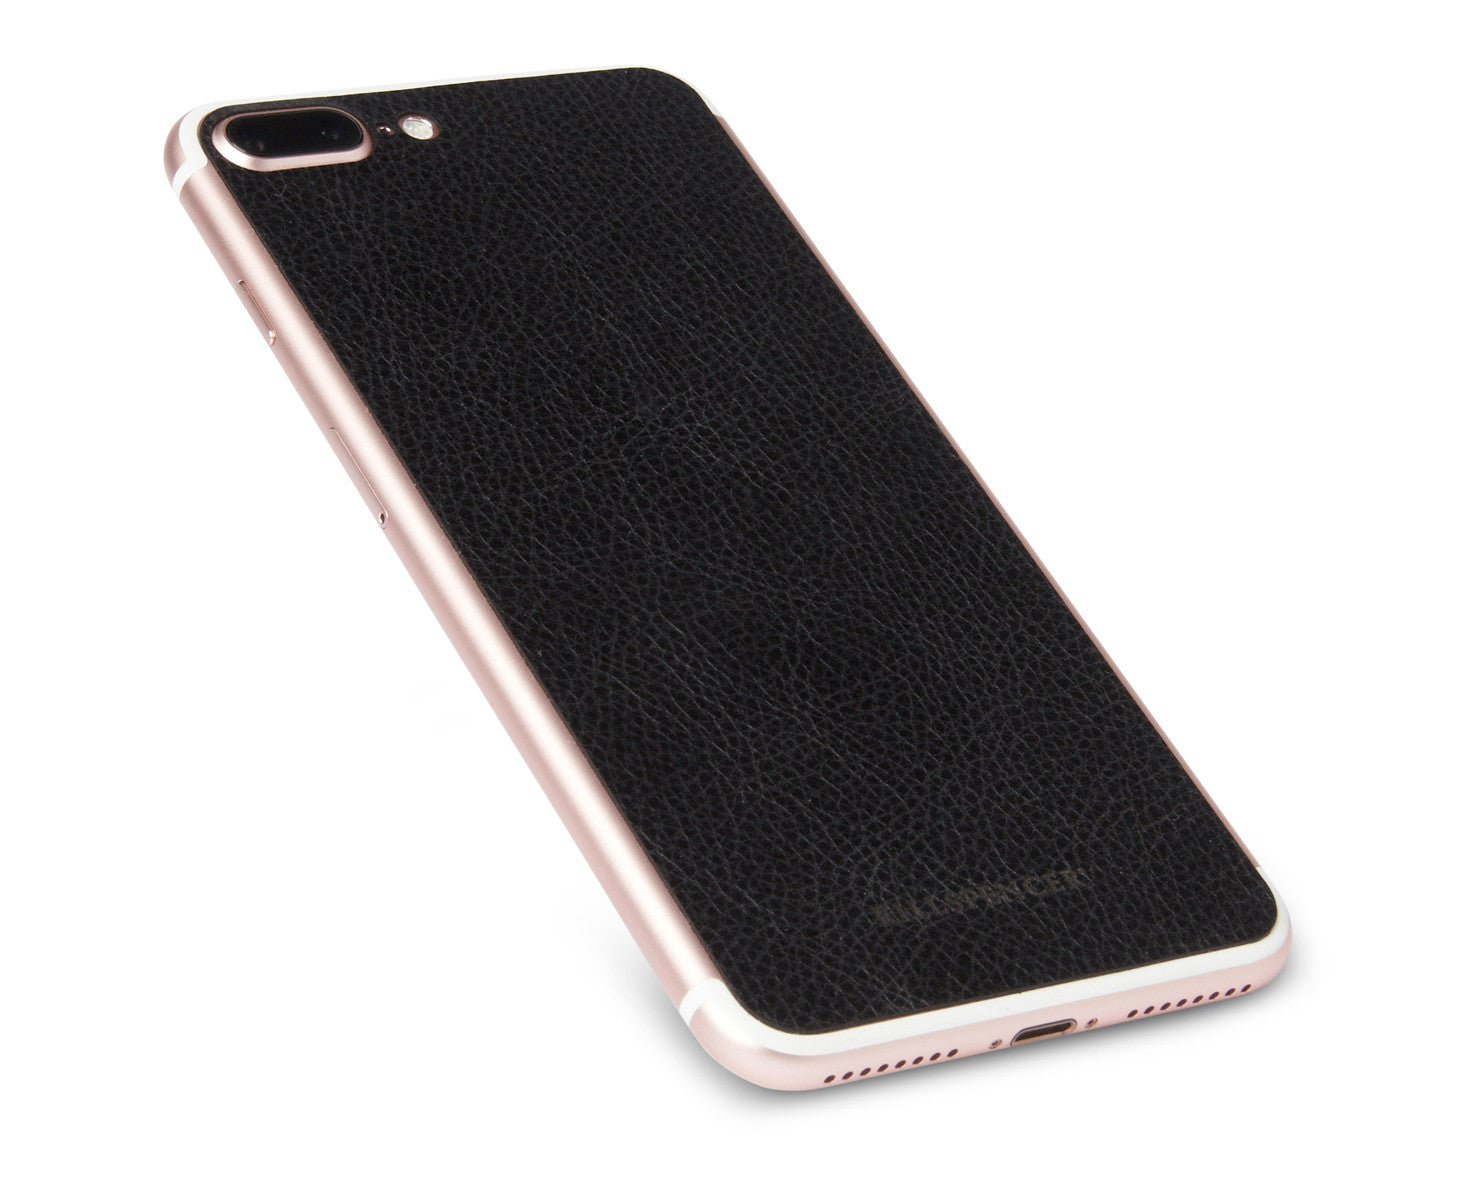 IPHONE 7 PLUS VEIL | KILLSPENCER® - Black Leather